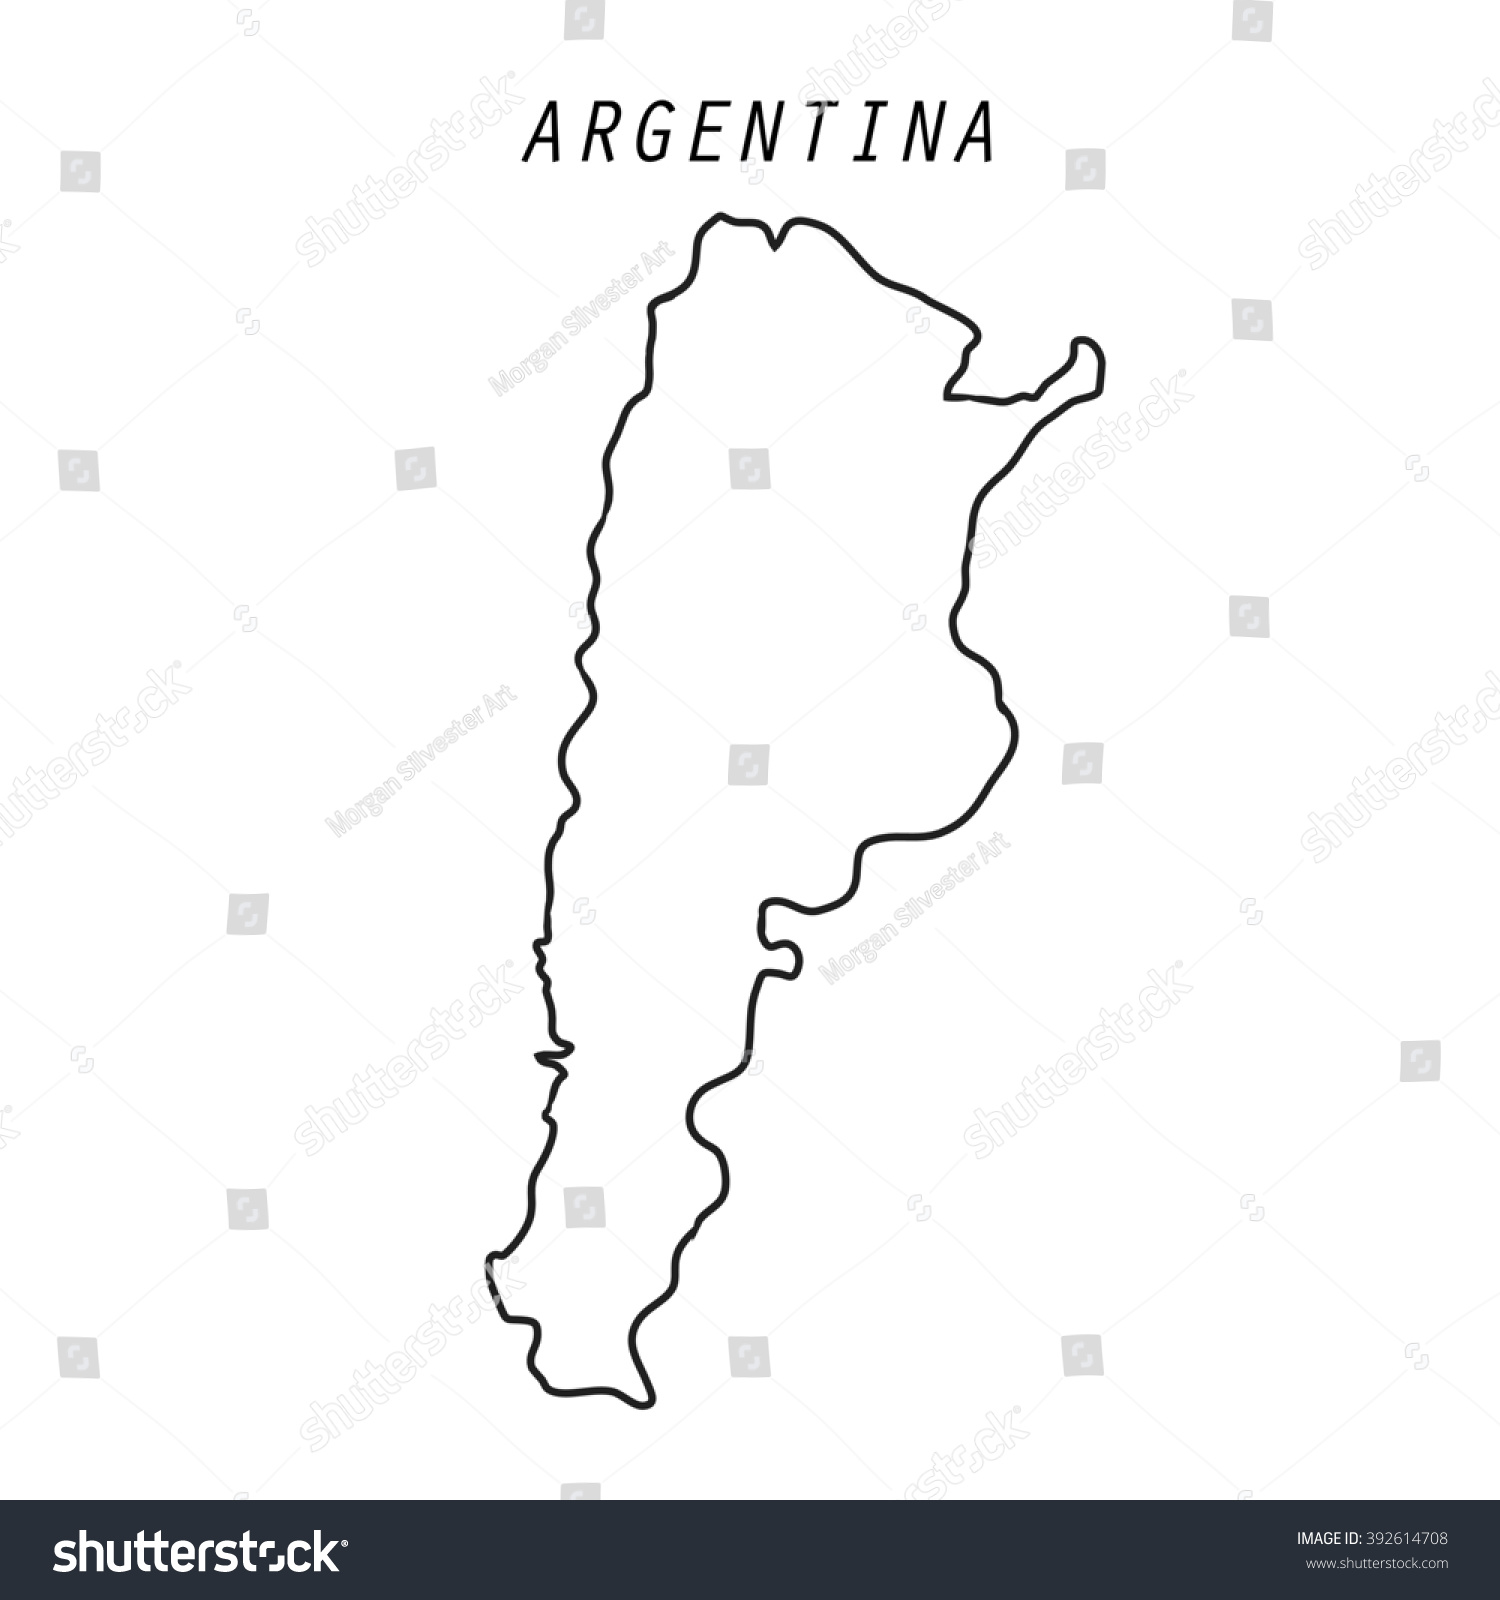 Argentina Map Outline Isolated Stock Illustration - Argentina map outline